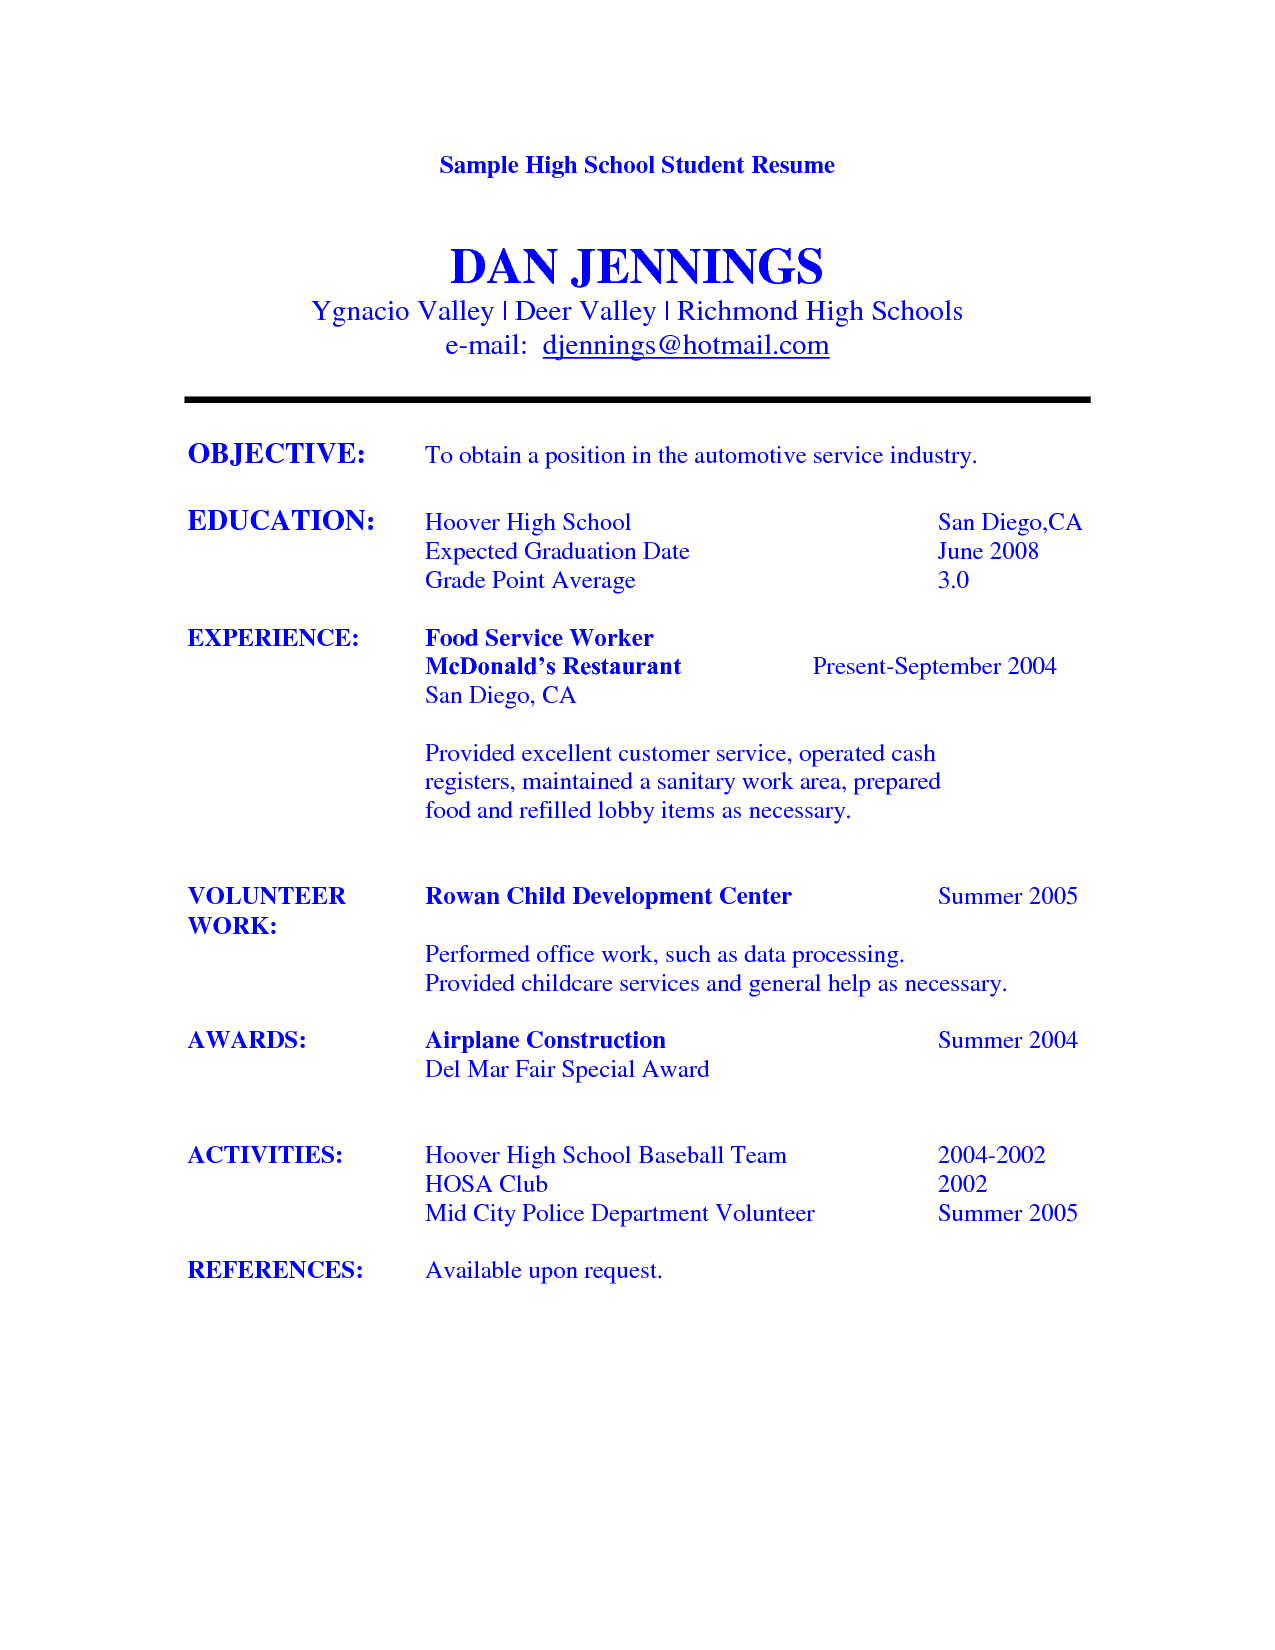 Resume Example For High School Student Sample Resumes -  Http://www.resumecareer.info/resume-Example-For-High-School-Student-Sample- Resumes-5/